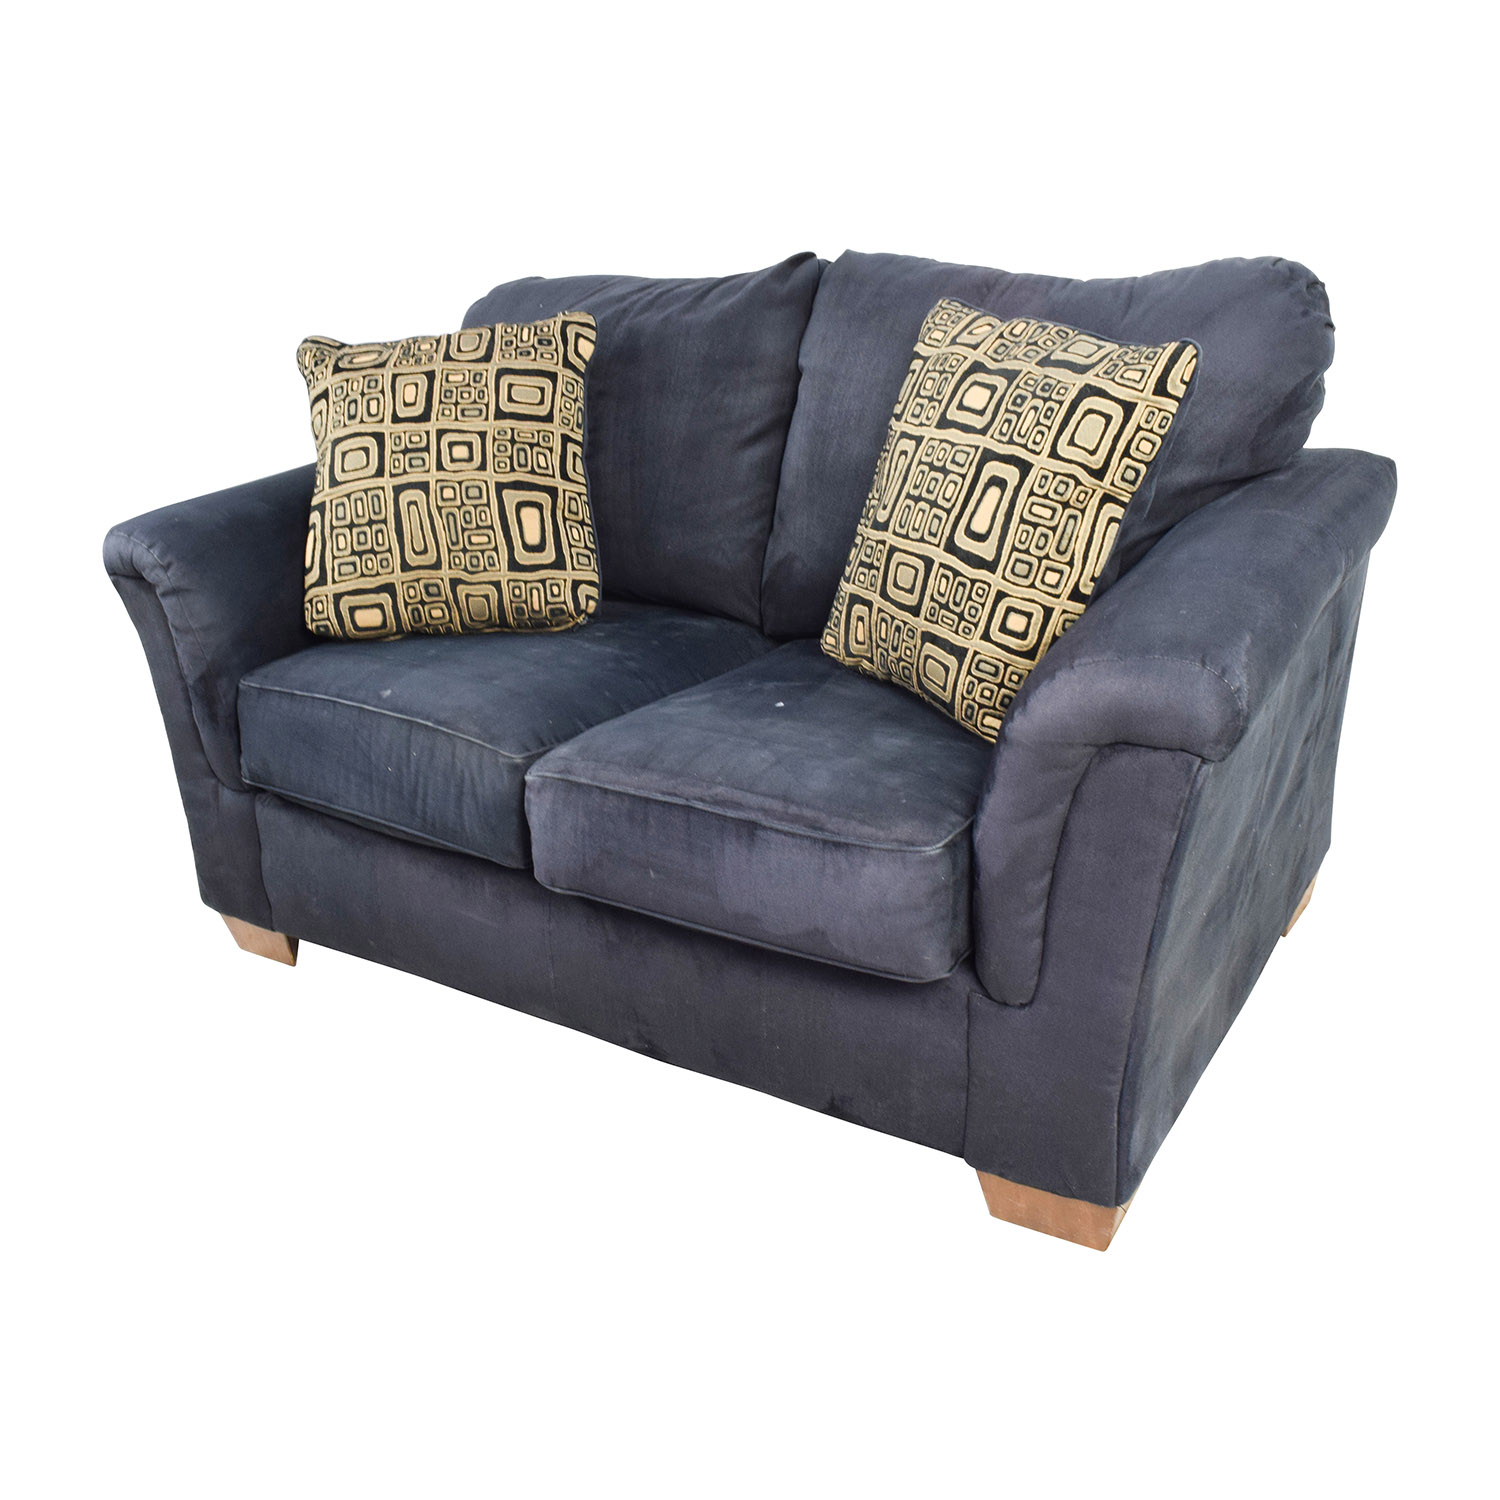 Loveseat Sofa Bed Ashley Furniture: Ashley Furniture Ashley Furniture Janley